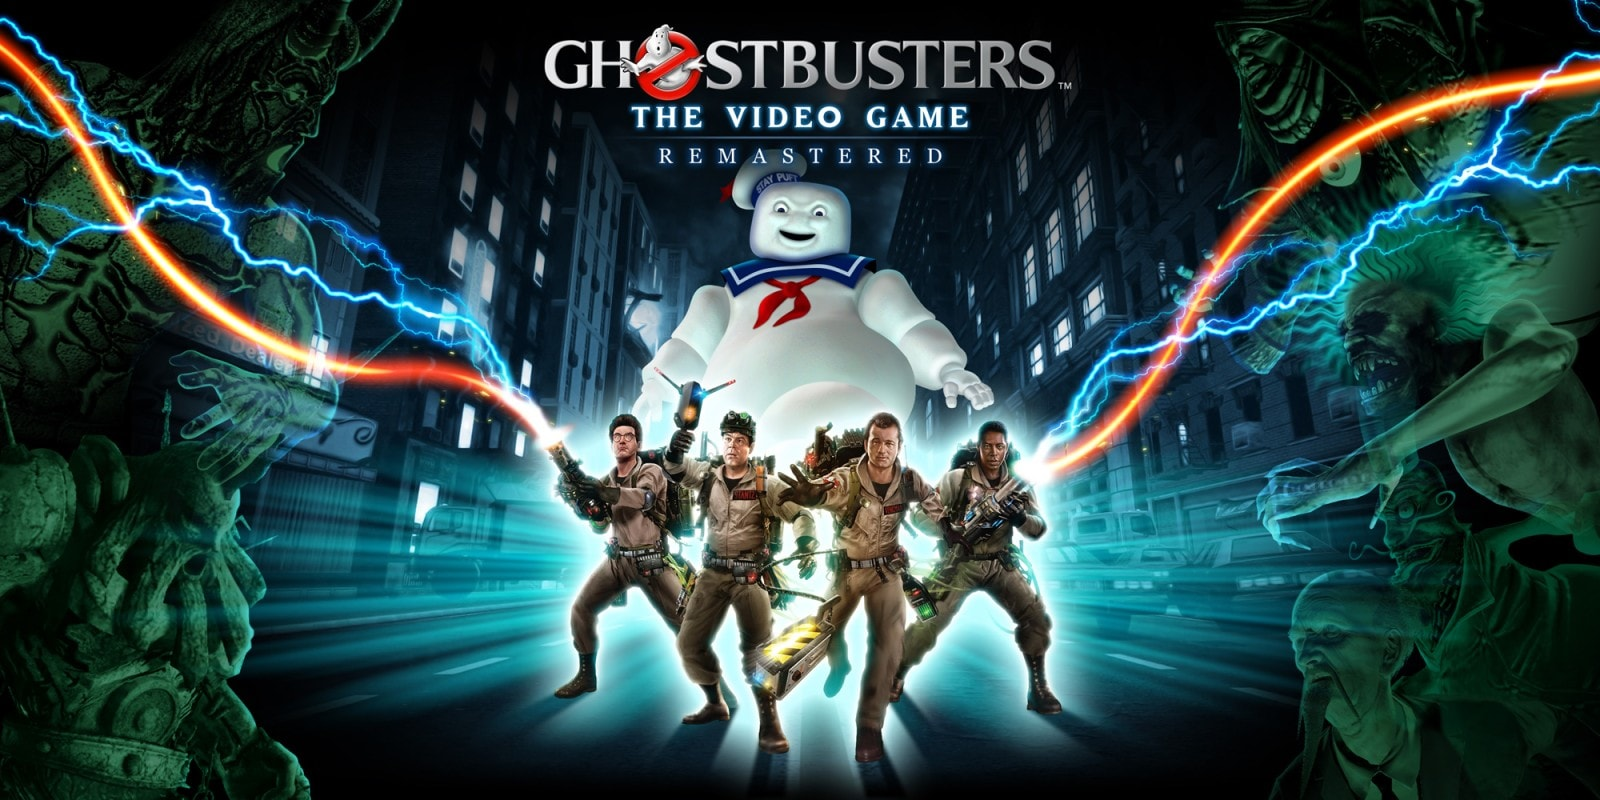 Ghostbusters-The-Video-Game-Remastered-Review-Smashtec